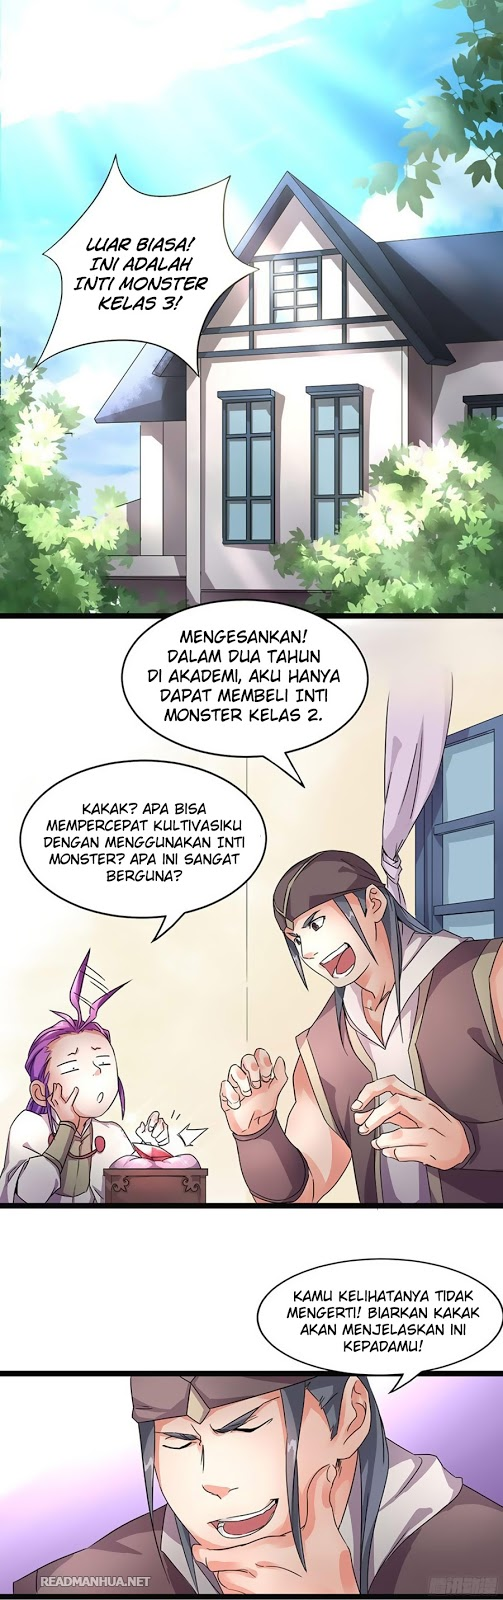 Baca Komik Chaotic Sword God Chapter 6 Komik Station